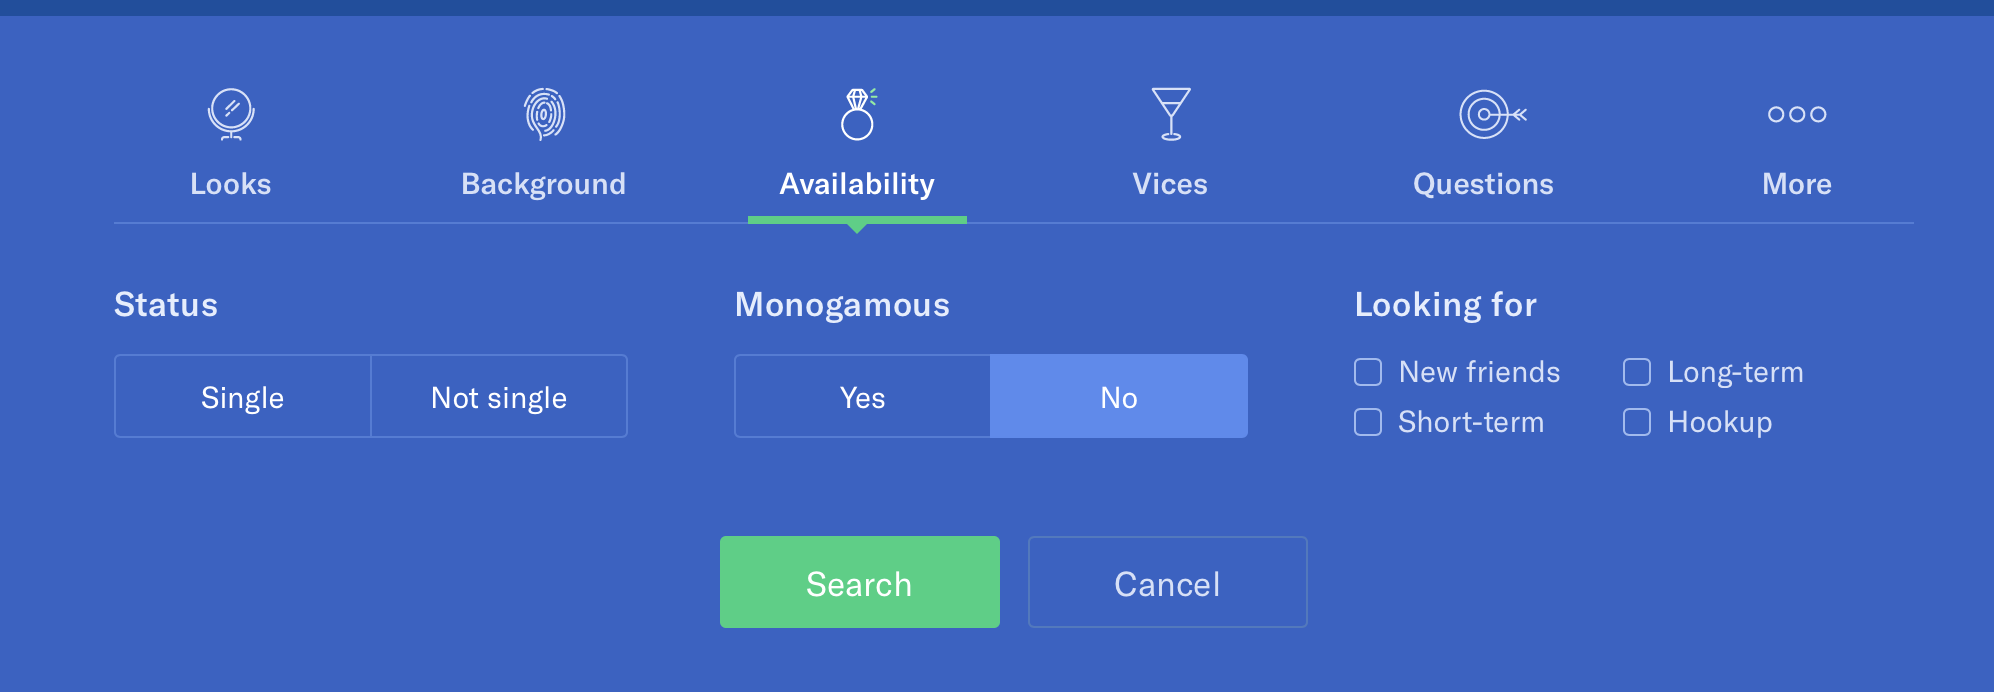 Non-Monogamy on OkCupid - OkCupid Help